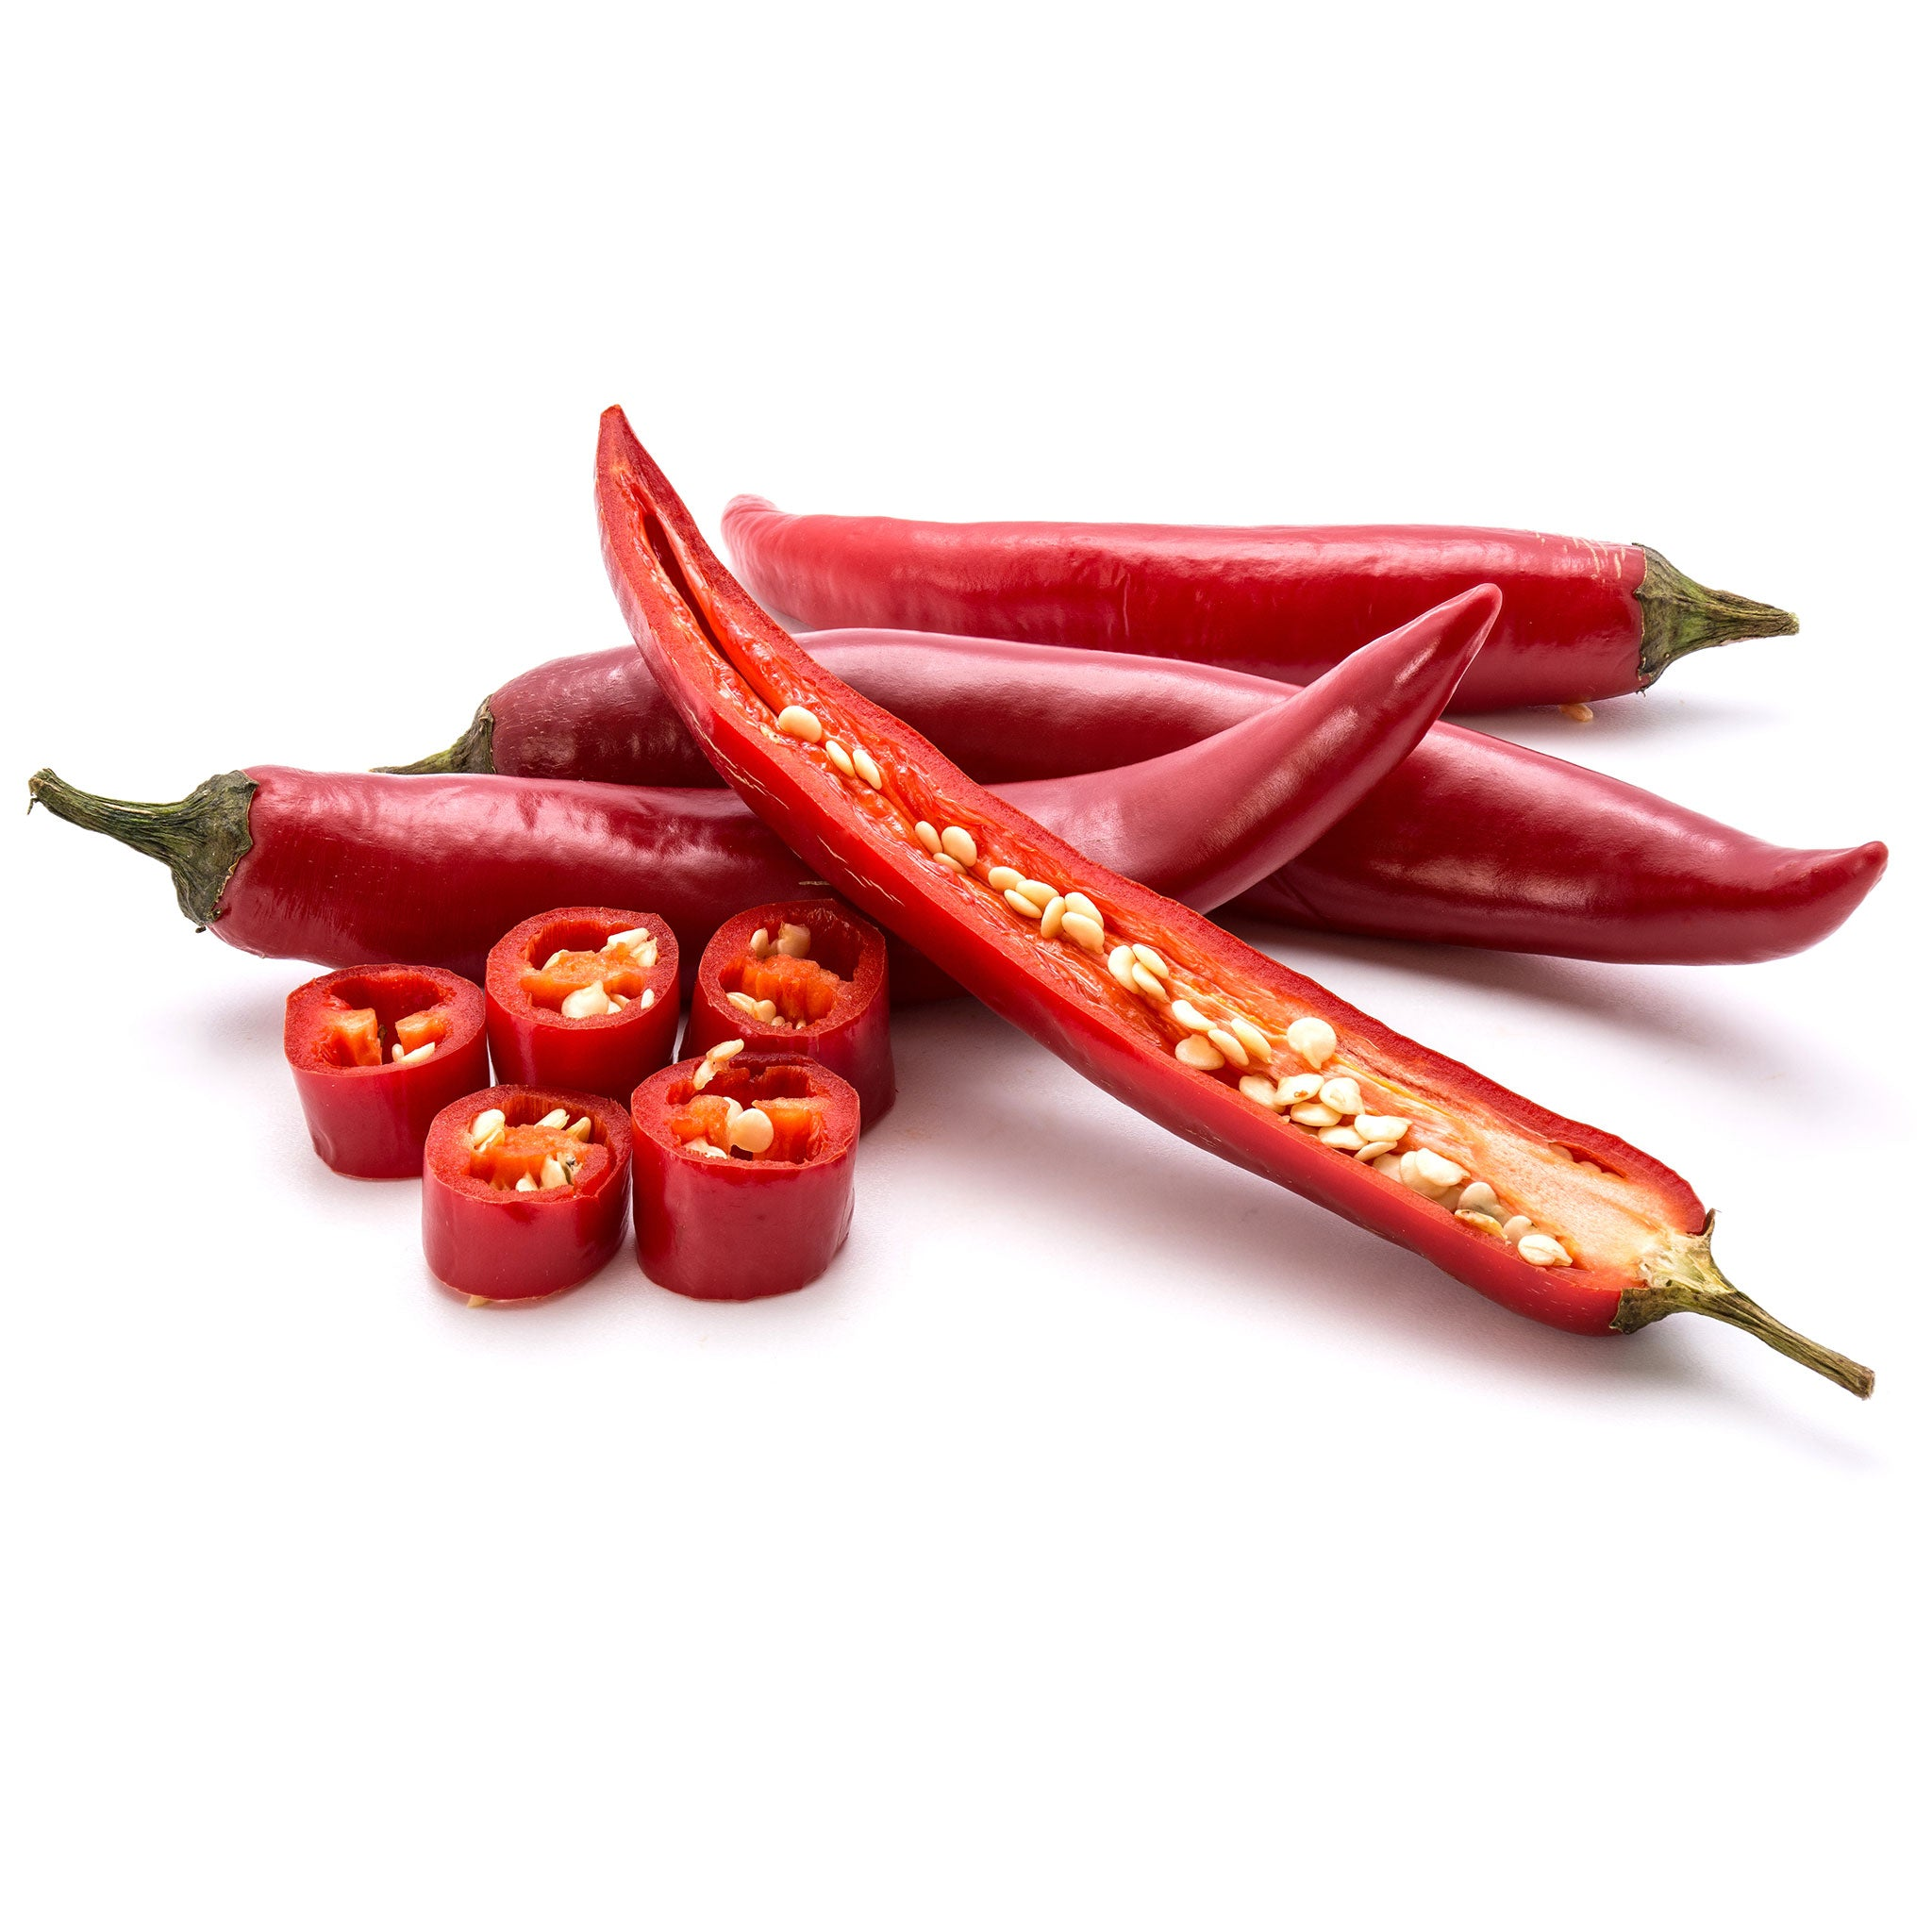 Large red Thai chillies (peppers)